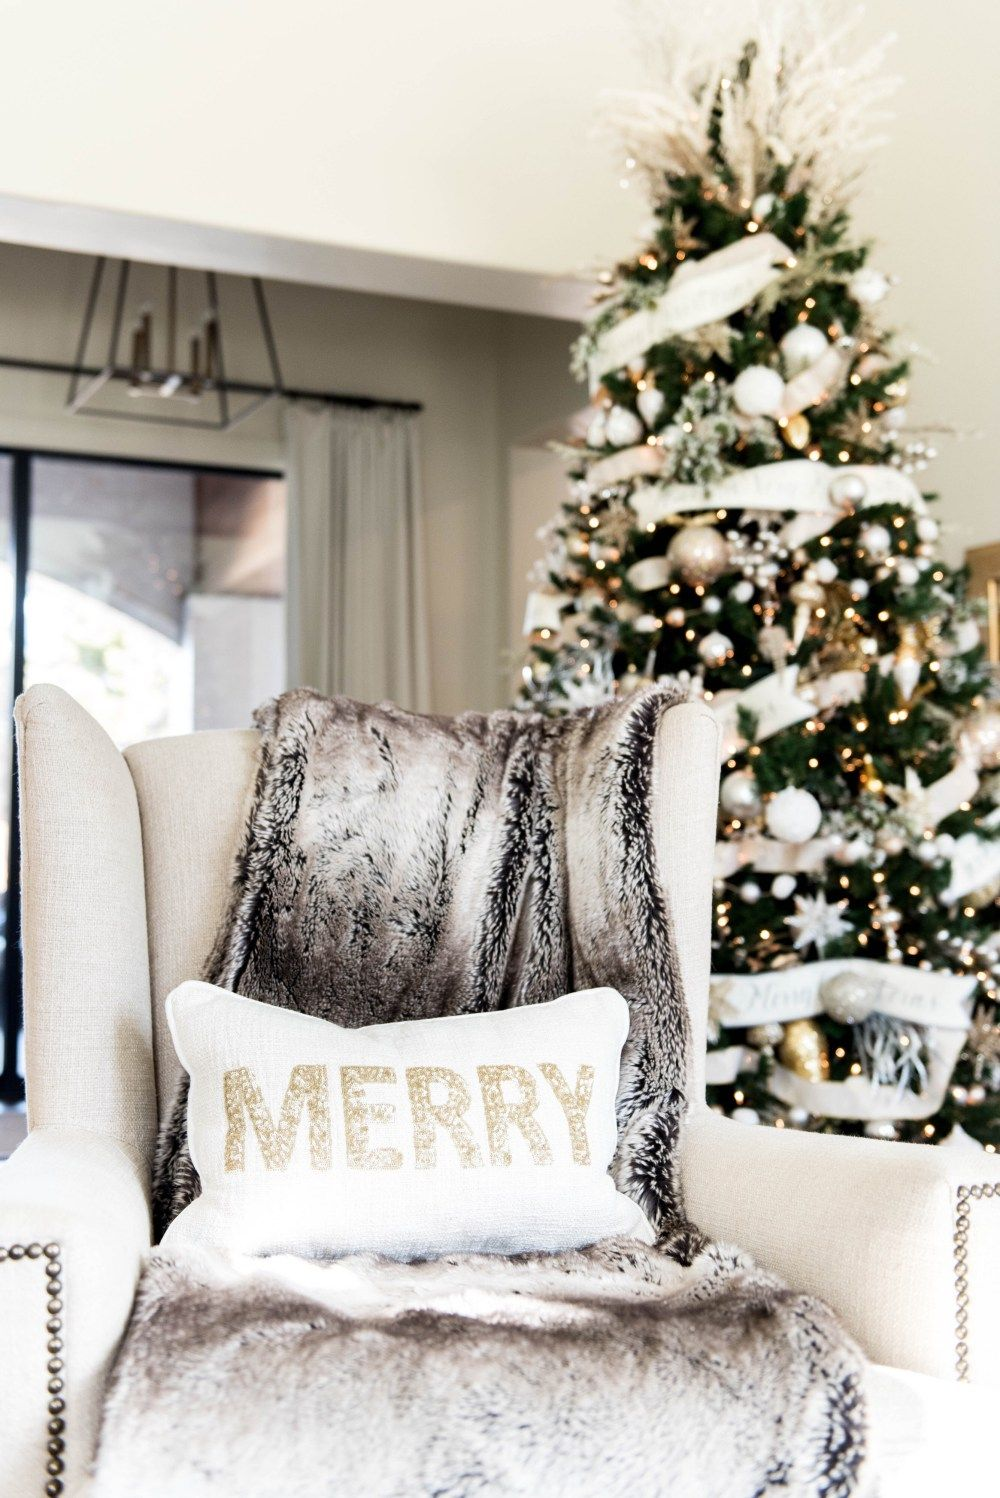 Glam Christmas Decor Home Decor Curls And Cashmere Glam Christmas Decor Glam Christmas Beautiful Christmas